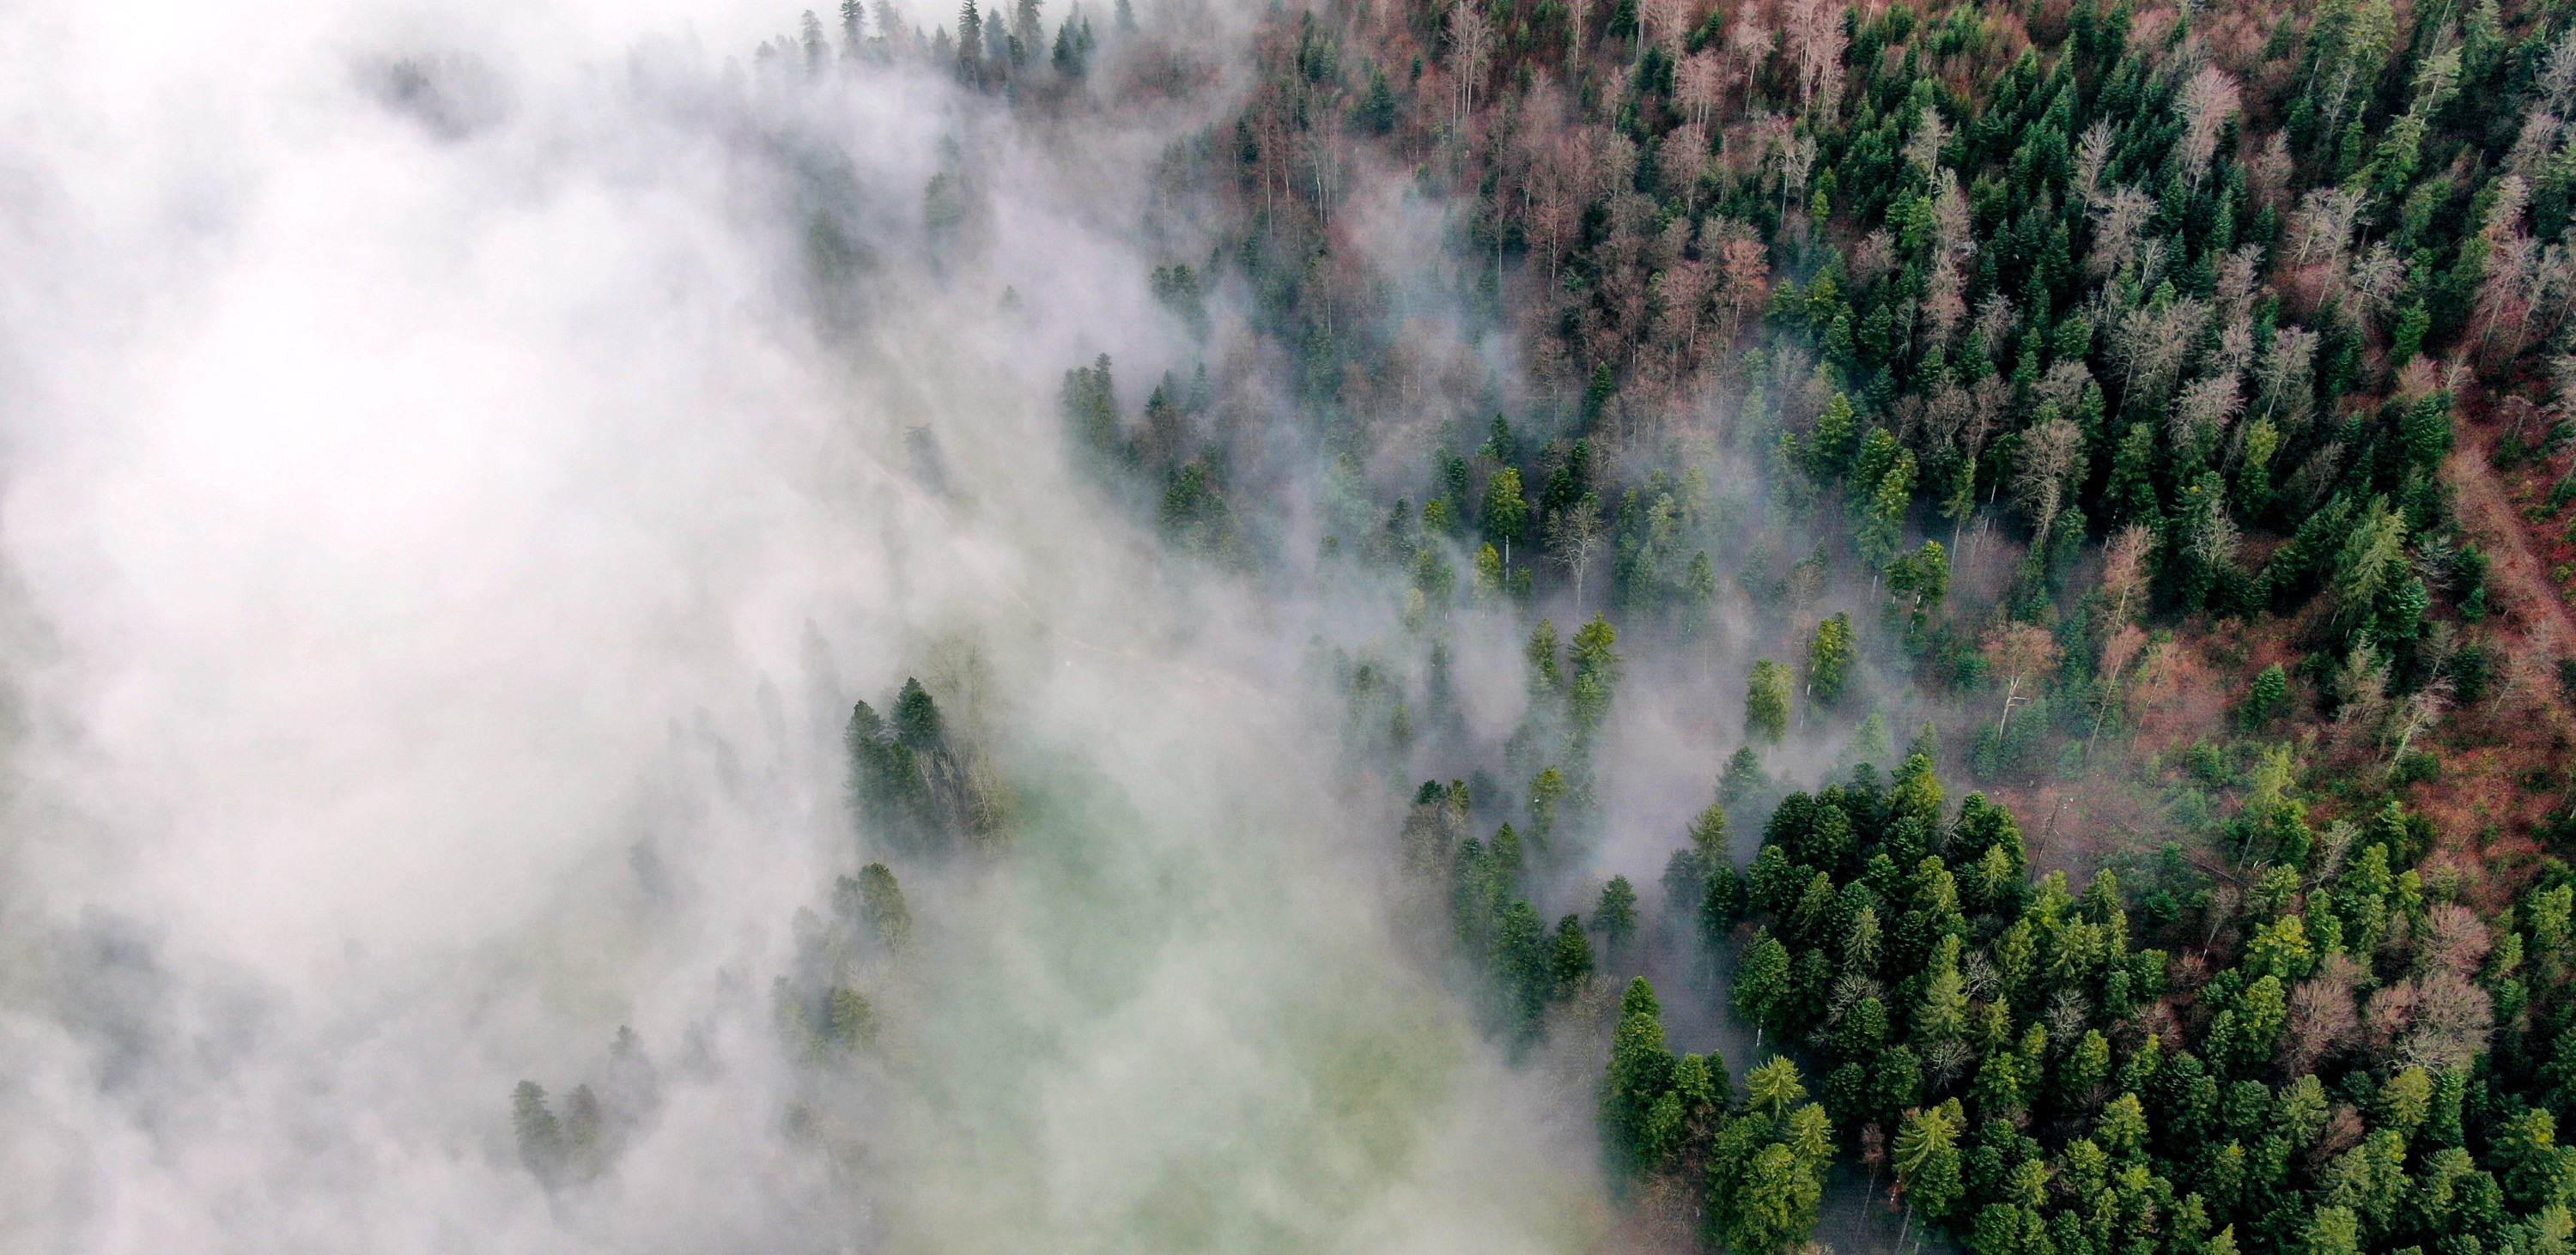 Aerial view of trees amid smoke or fog.